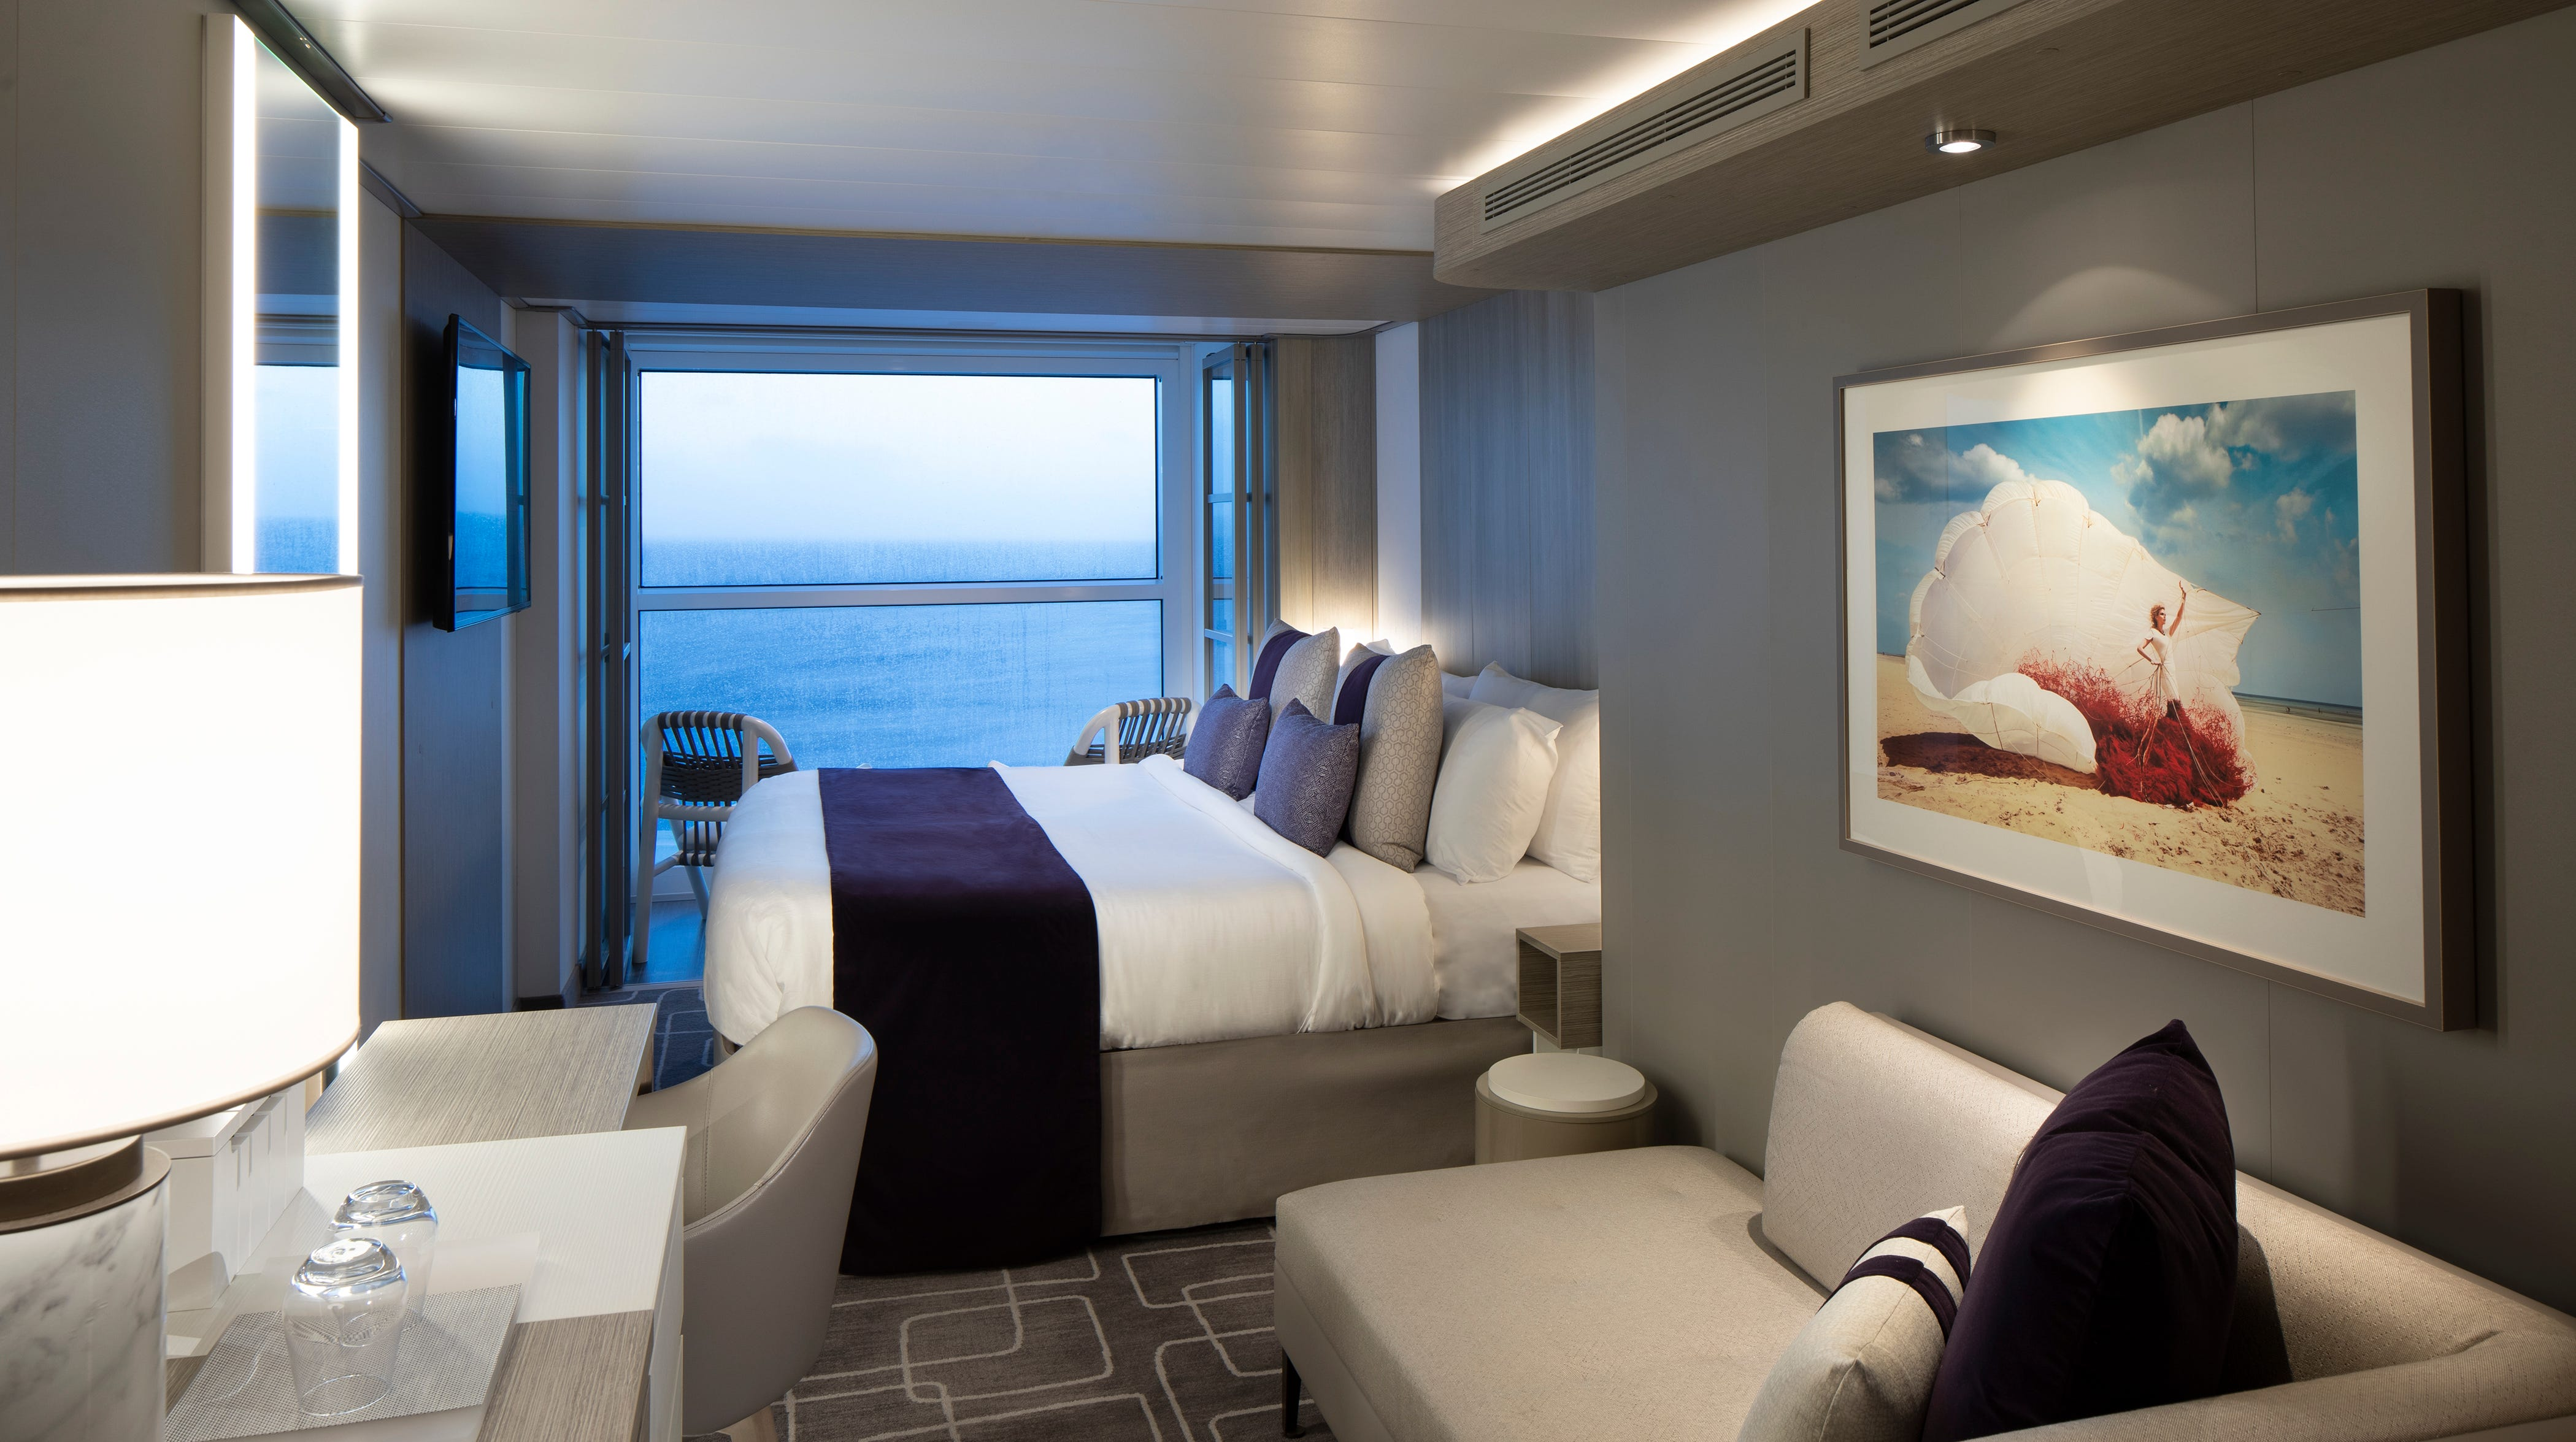 Celebrity Edge New Cruise Ship S Cabins Have Walls Of Glass